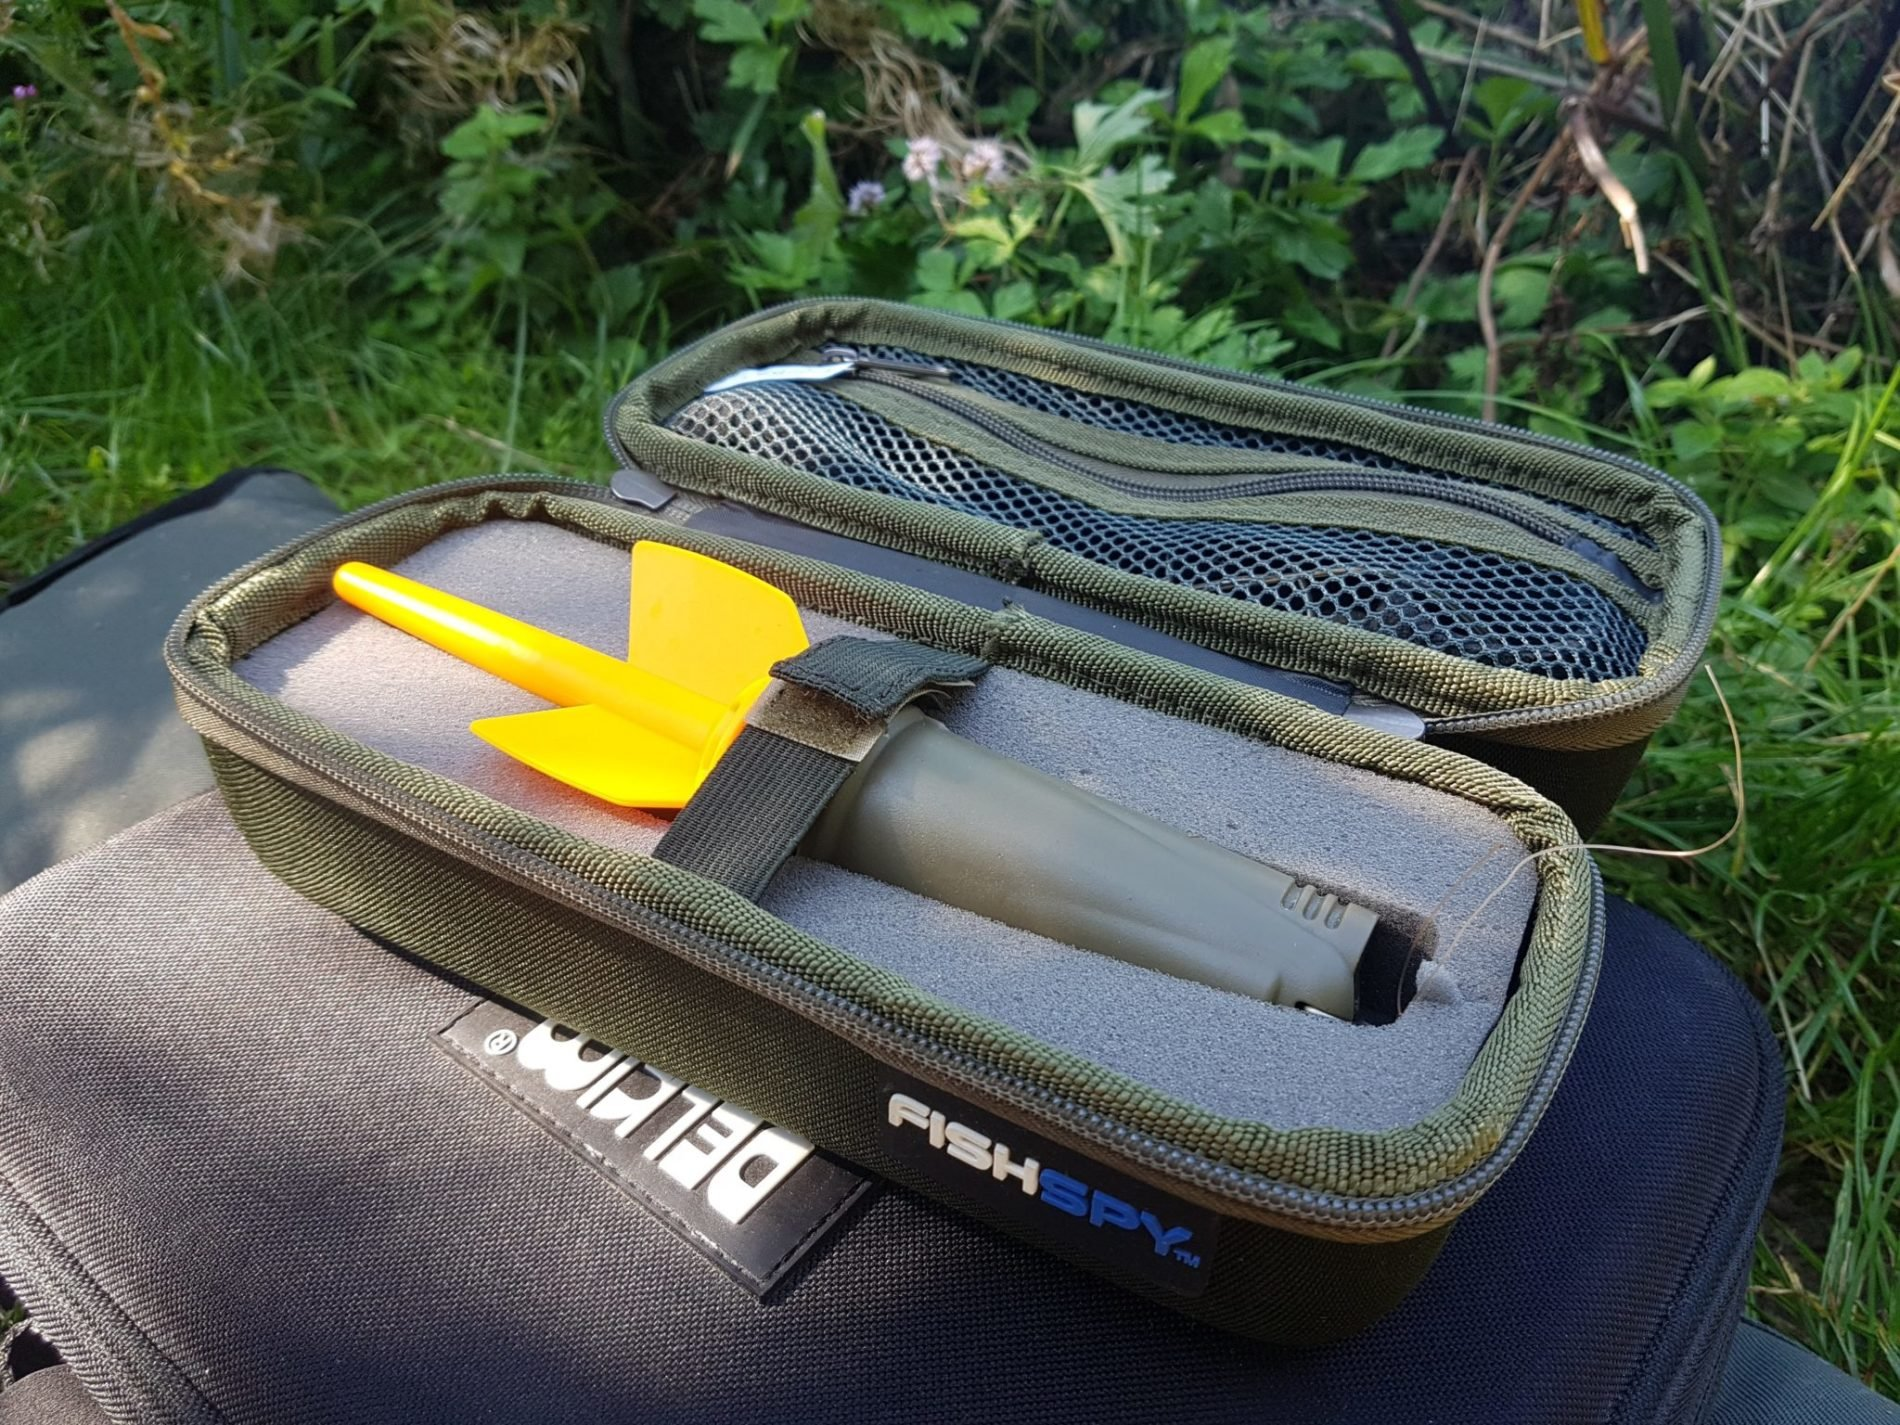 FishSpy Underwater Camera Review – Useful Tool or Gimmick?